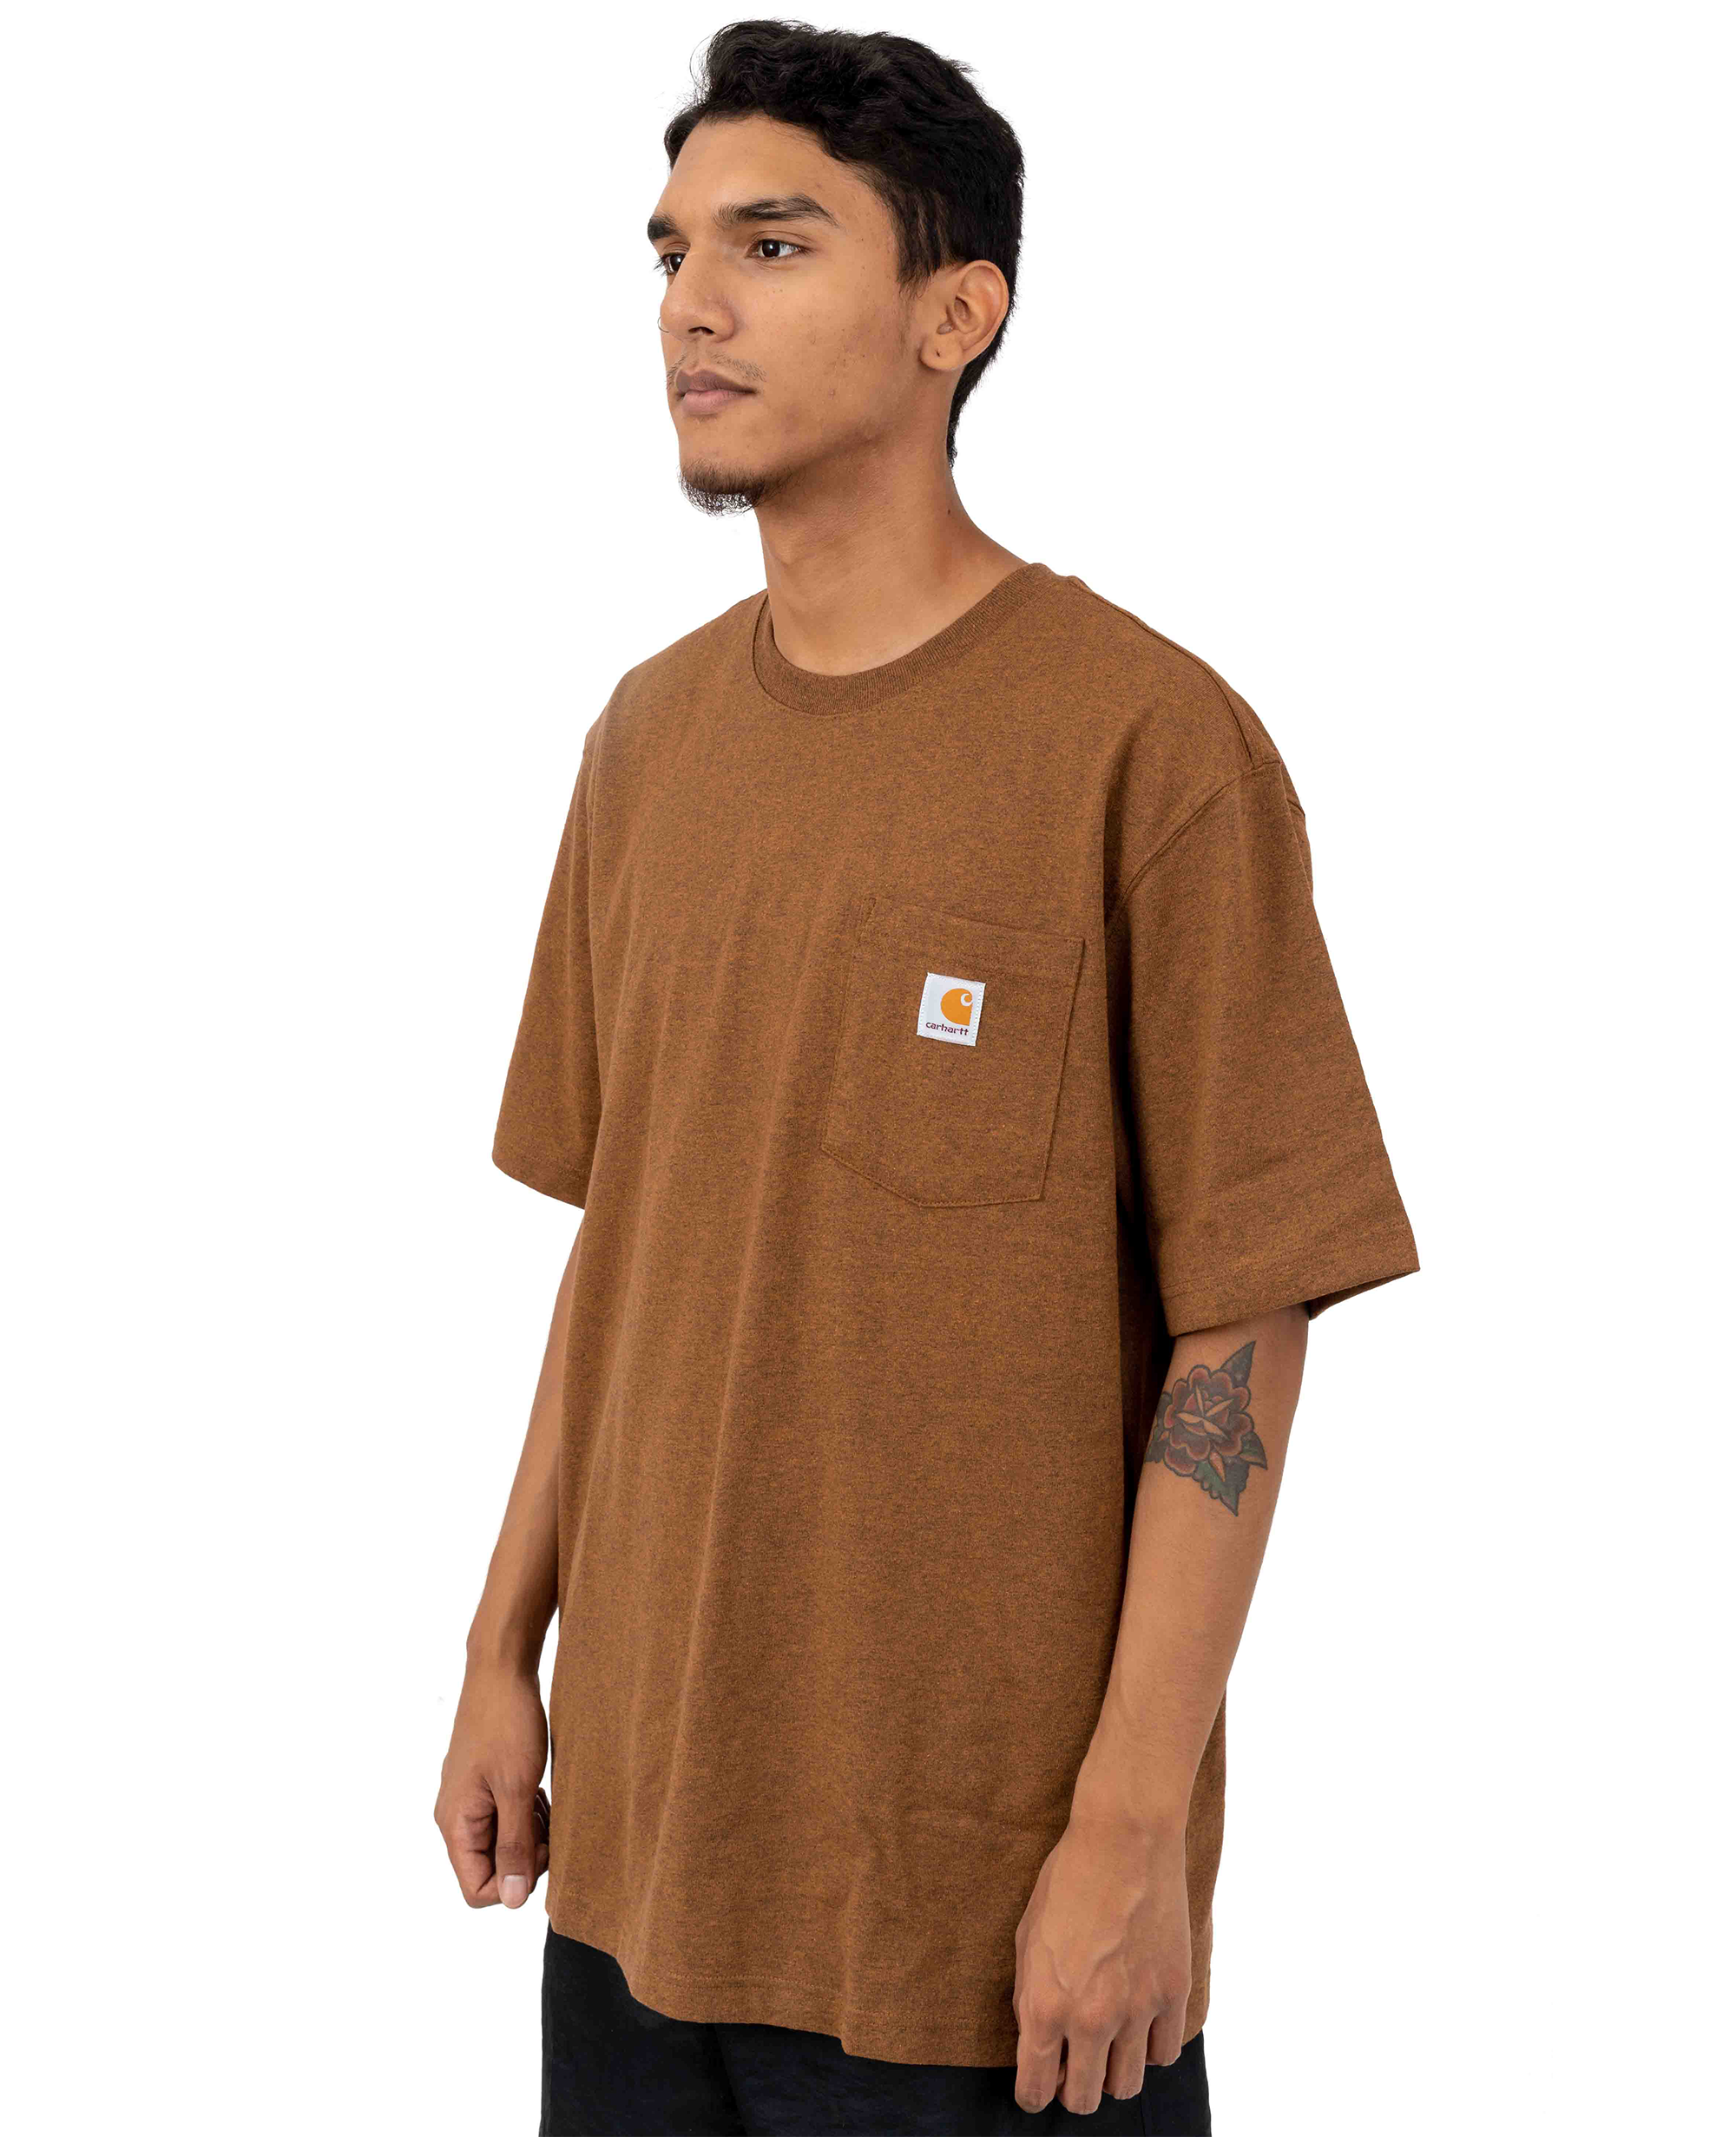 Heavyweight Pocket T-shirt in Oiled Walnut Heather - T-Shirts - Carhartt WIP - BRANMA